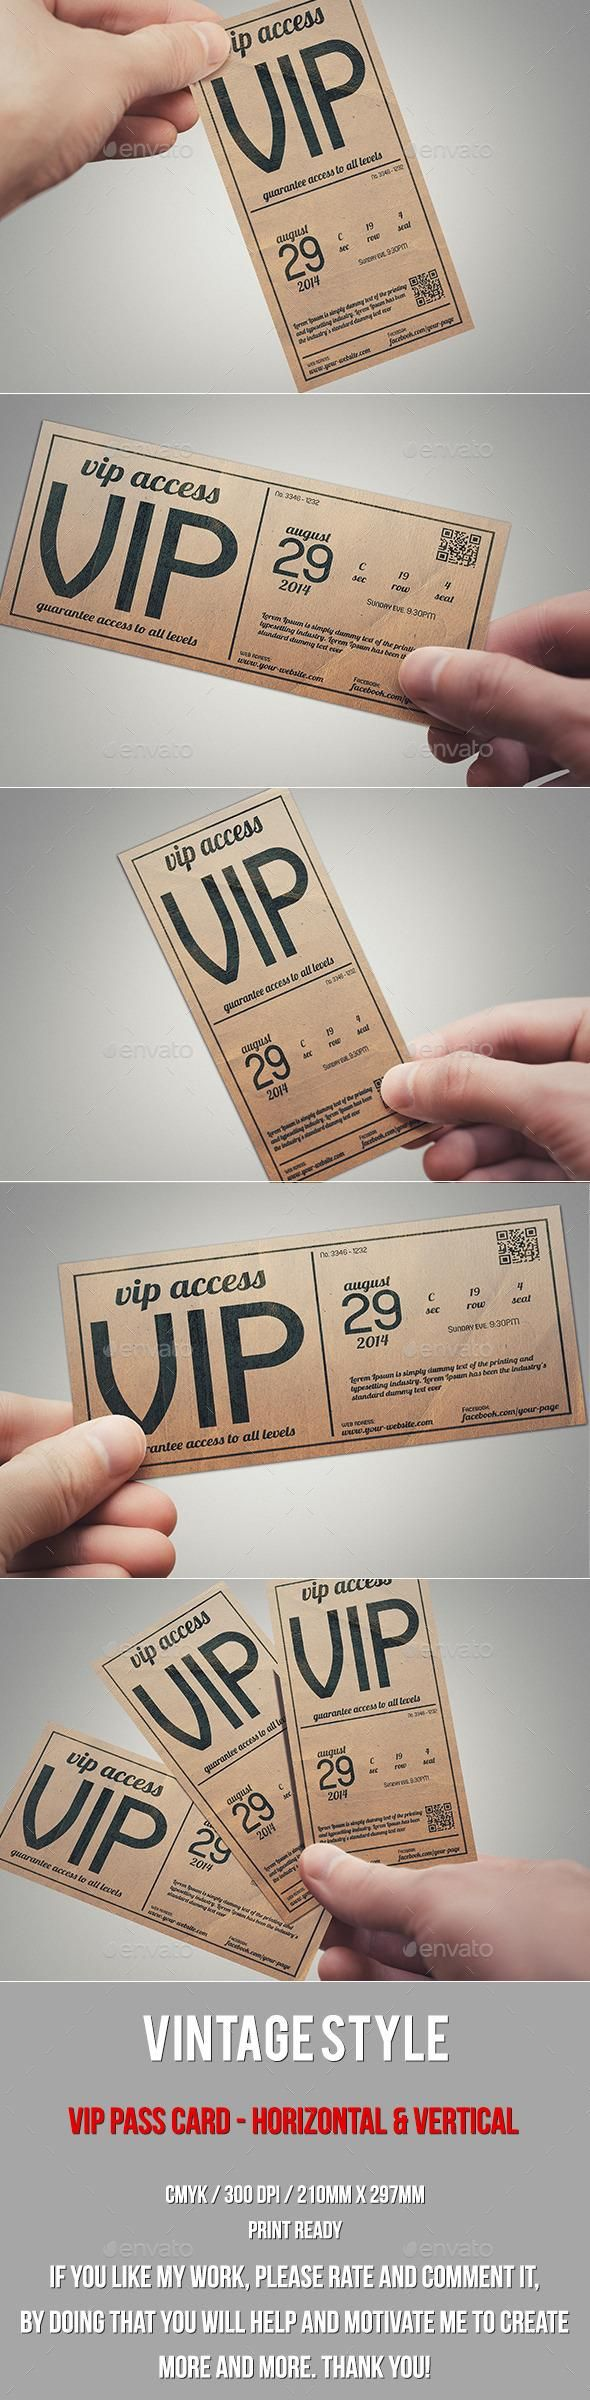 Vintage Style Vip Pass Card #template #cards #print #invites